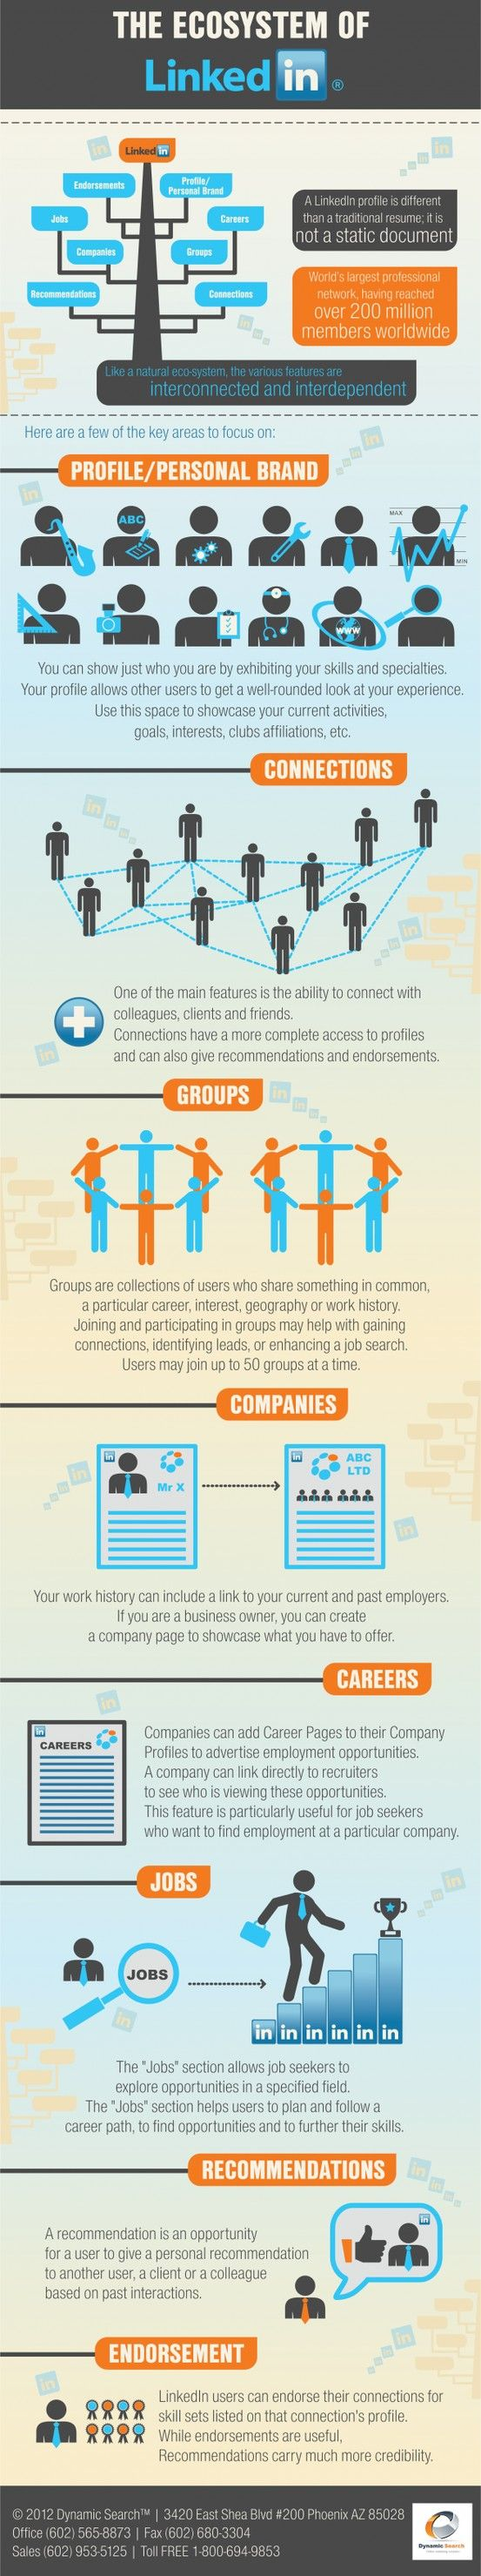 SOCIAL MEDIA -         The Ecosystem of Linkedin.